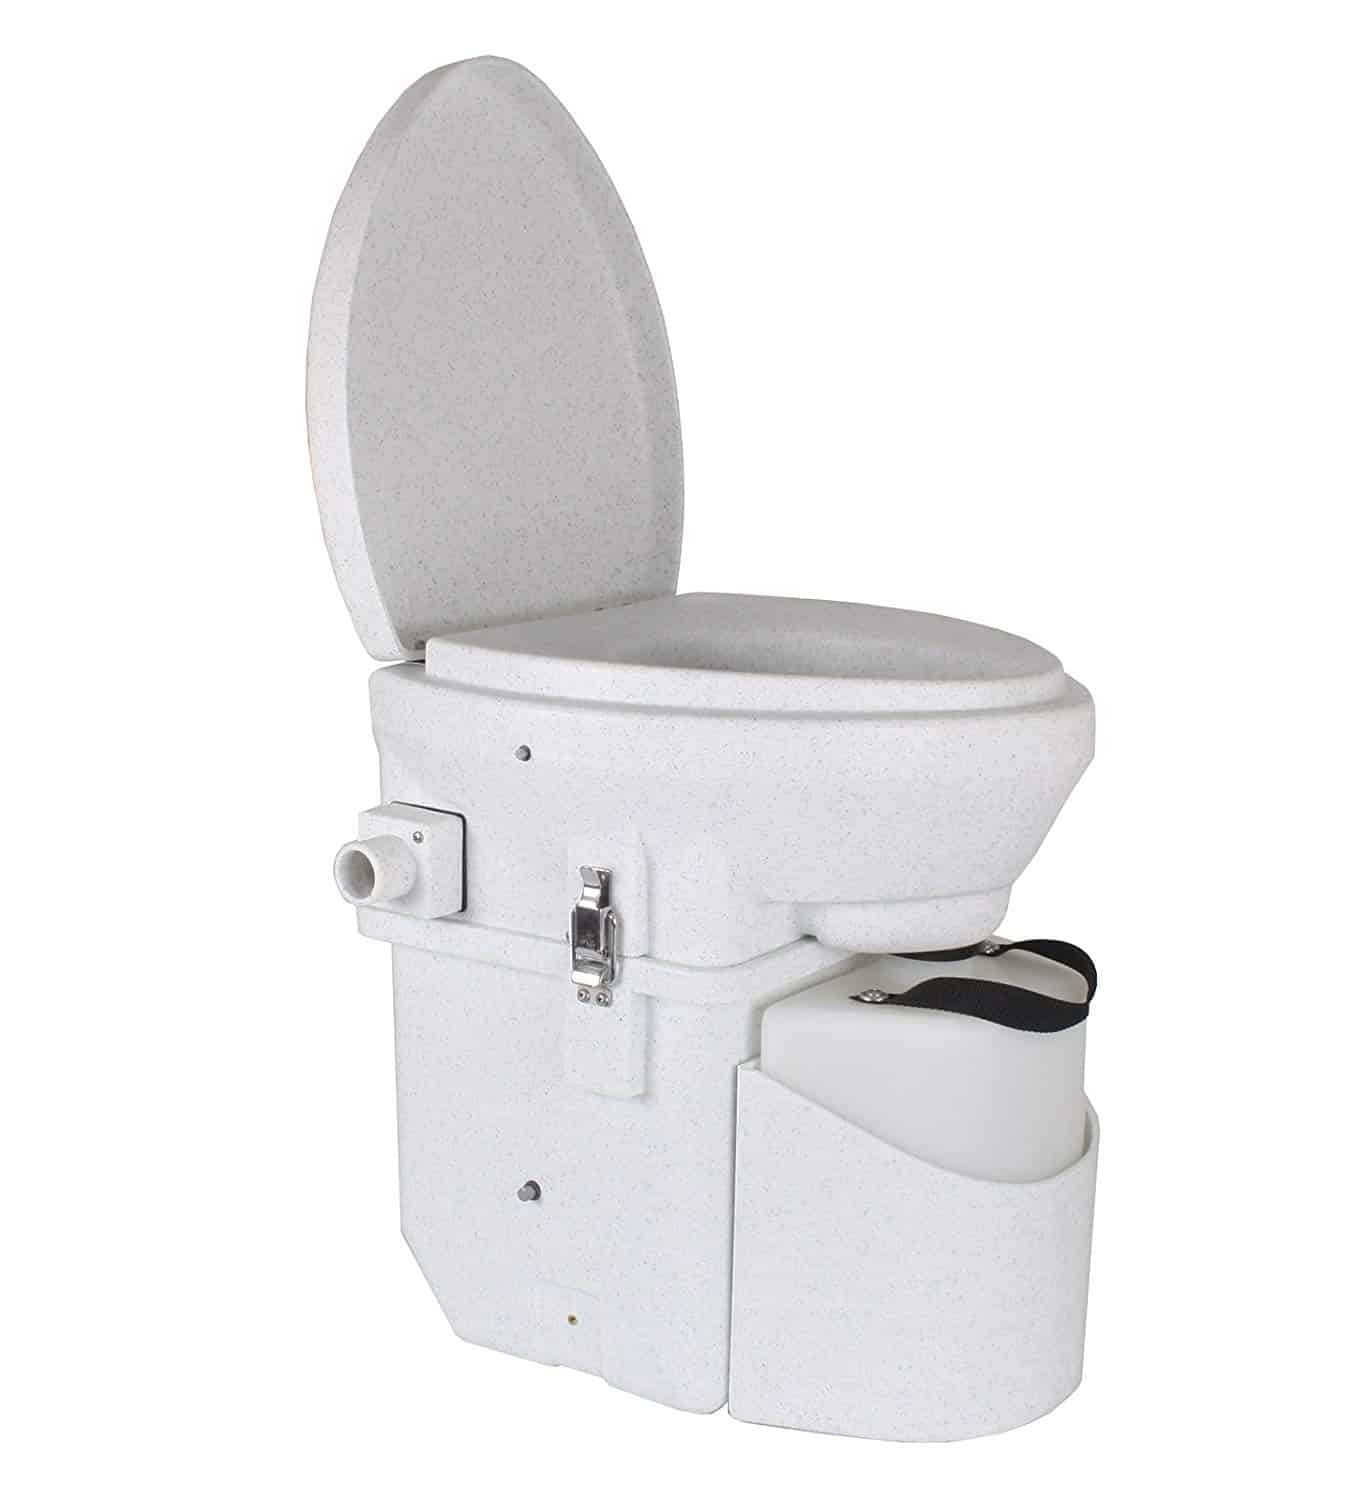 plumbing and composting toilets